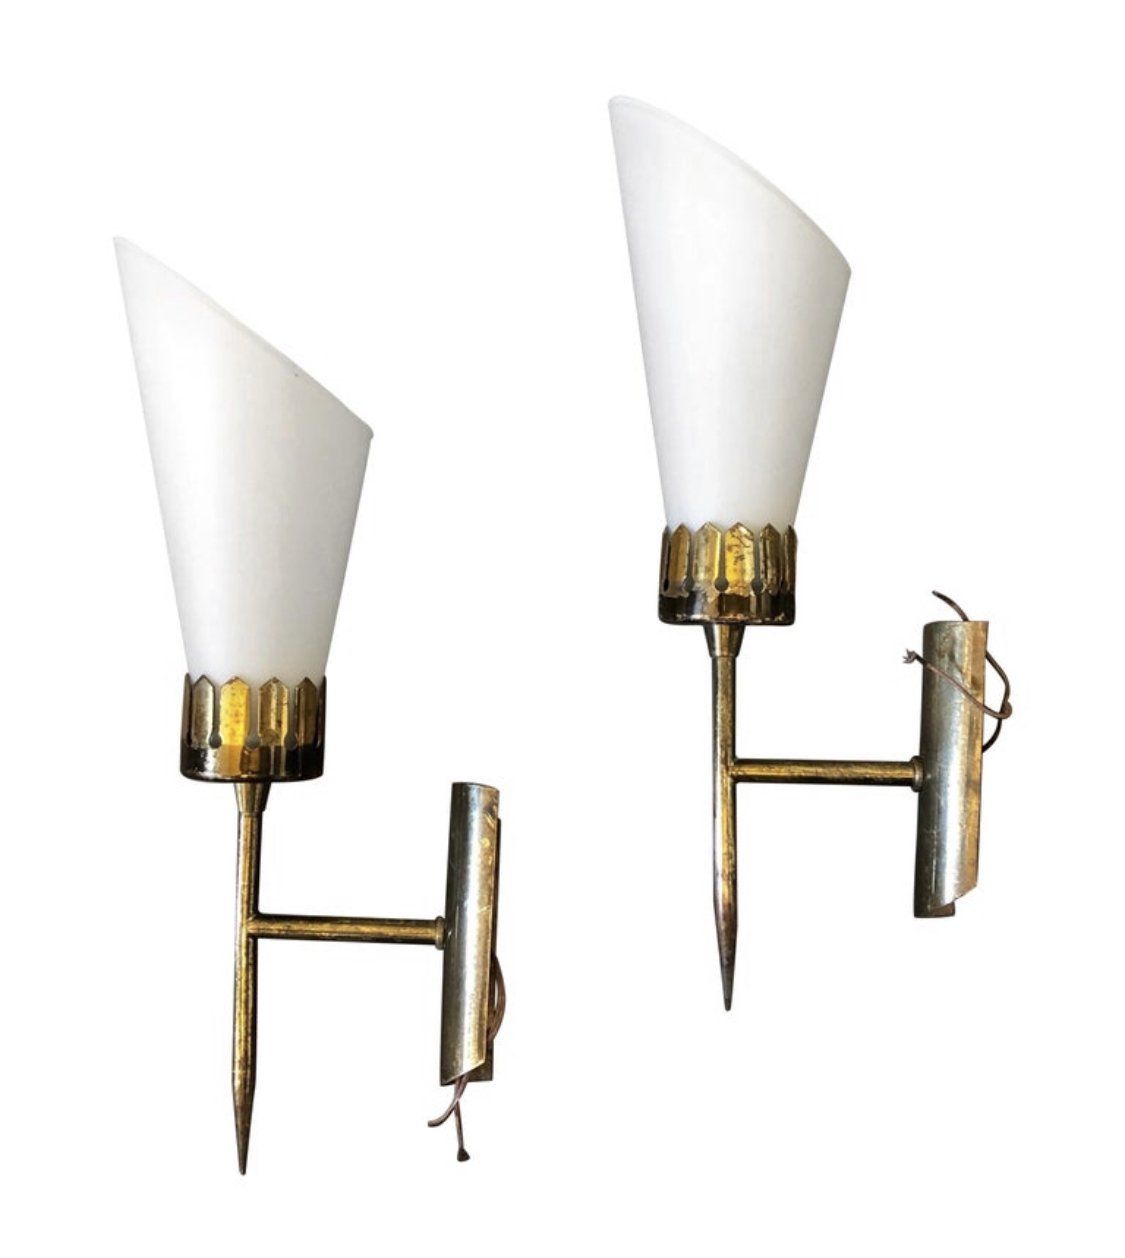 Image of: Set Of Two Mid Century Modern Brass Glass Italian Wall Sconces Circa 1950 136809